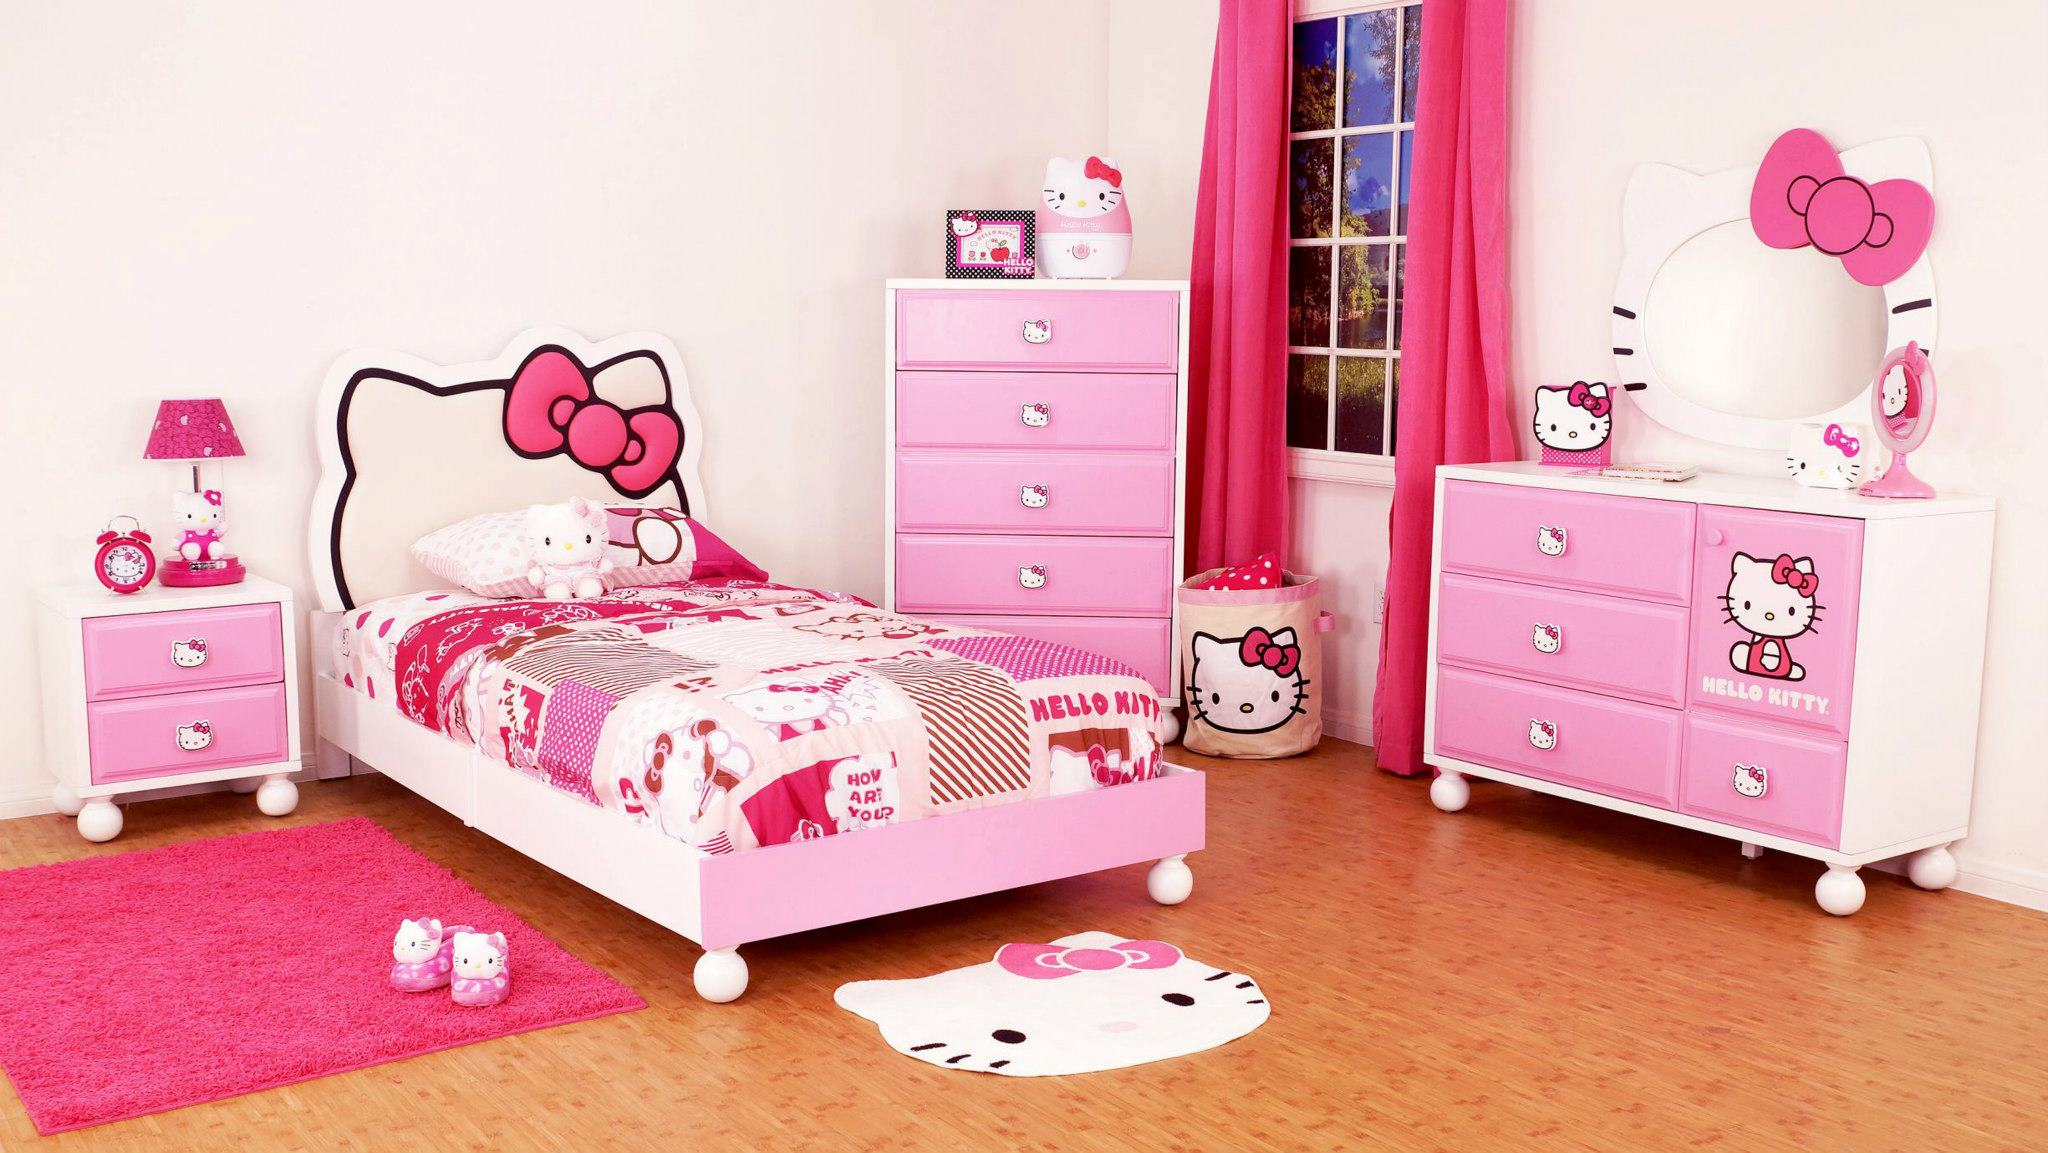 Hello kitty crib for sale - Hello Kitty Girls Room Designs